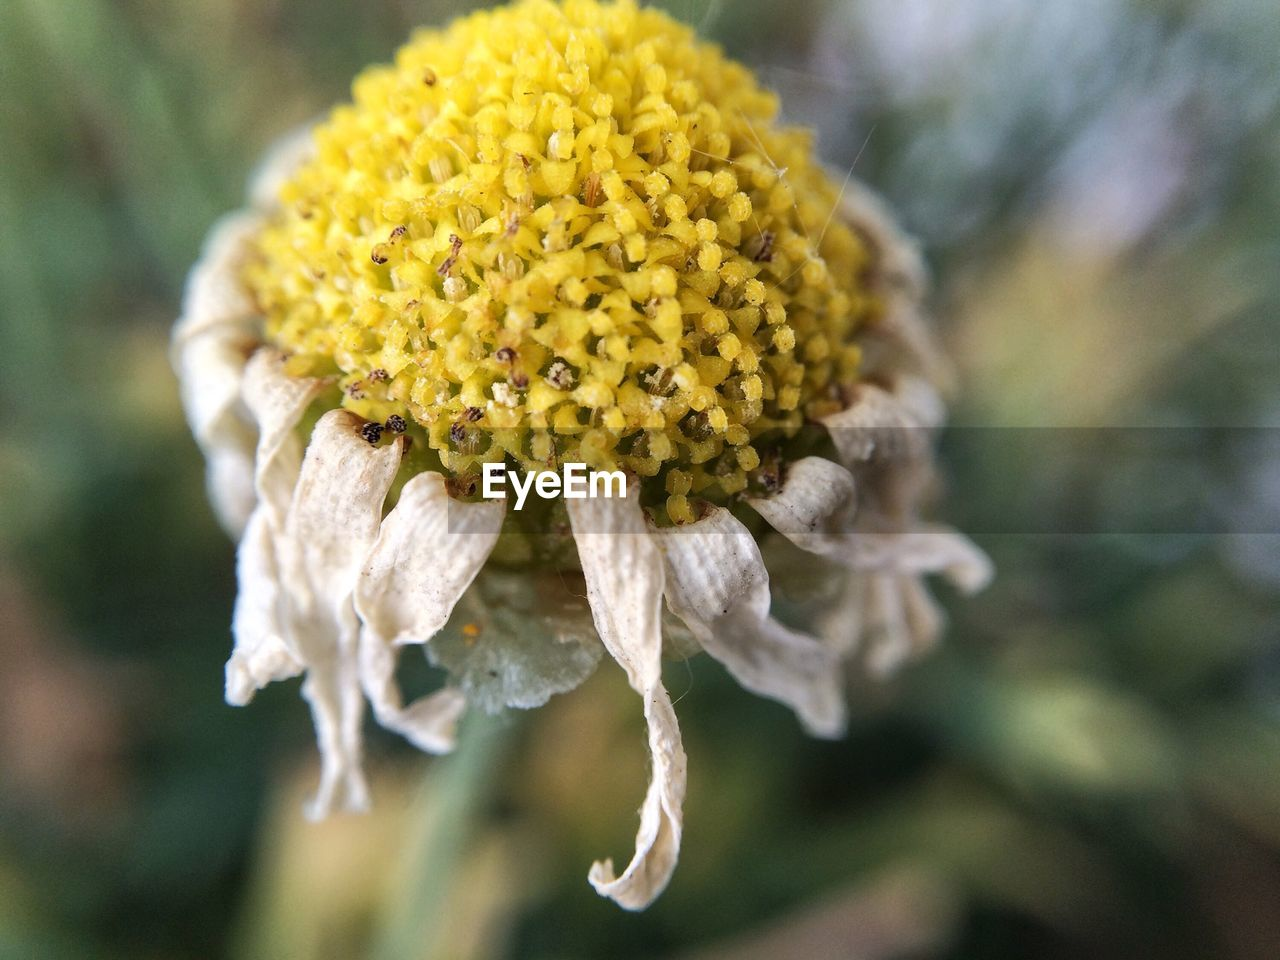 flowering plant, flower, vulnerability, fragility, beauty in nature, plant, freshness, close-up, growth, flower head, yellow, petal, inflorescence, focus on foreground, nature, day, no people, outdoors, selective focus, pollen